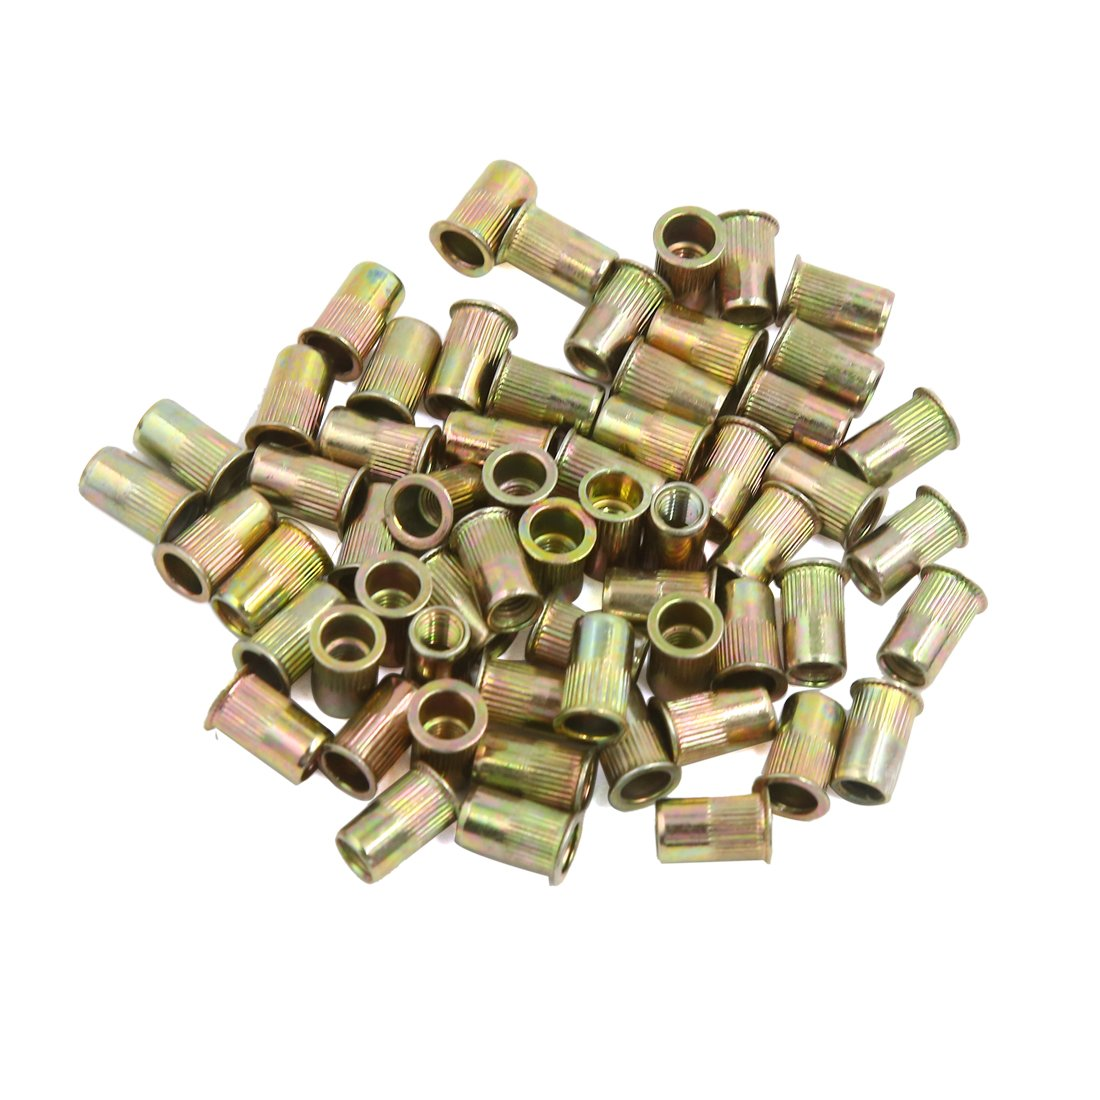 uxcell a16073000ux1890 60 Pcs M5 Bronze Tone Stainless Steel Thread Small Head Rivet Nut Nutserts, Pack